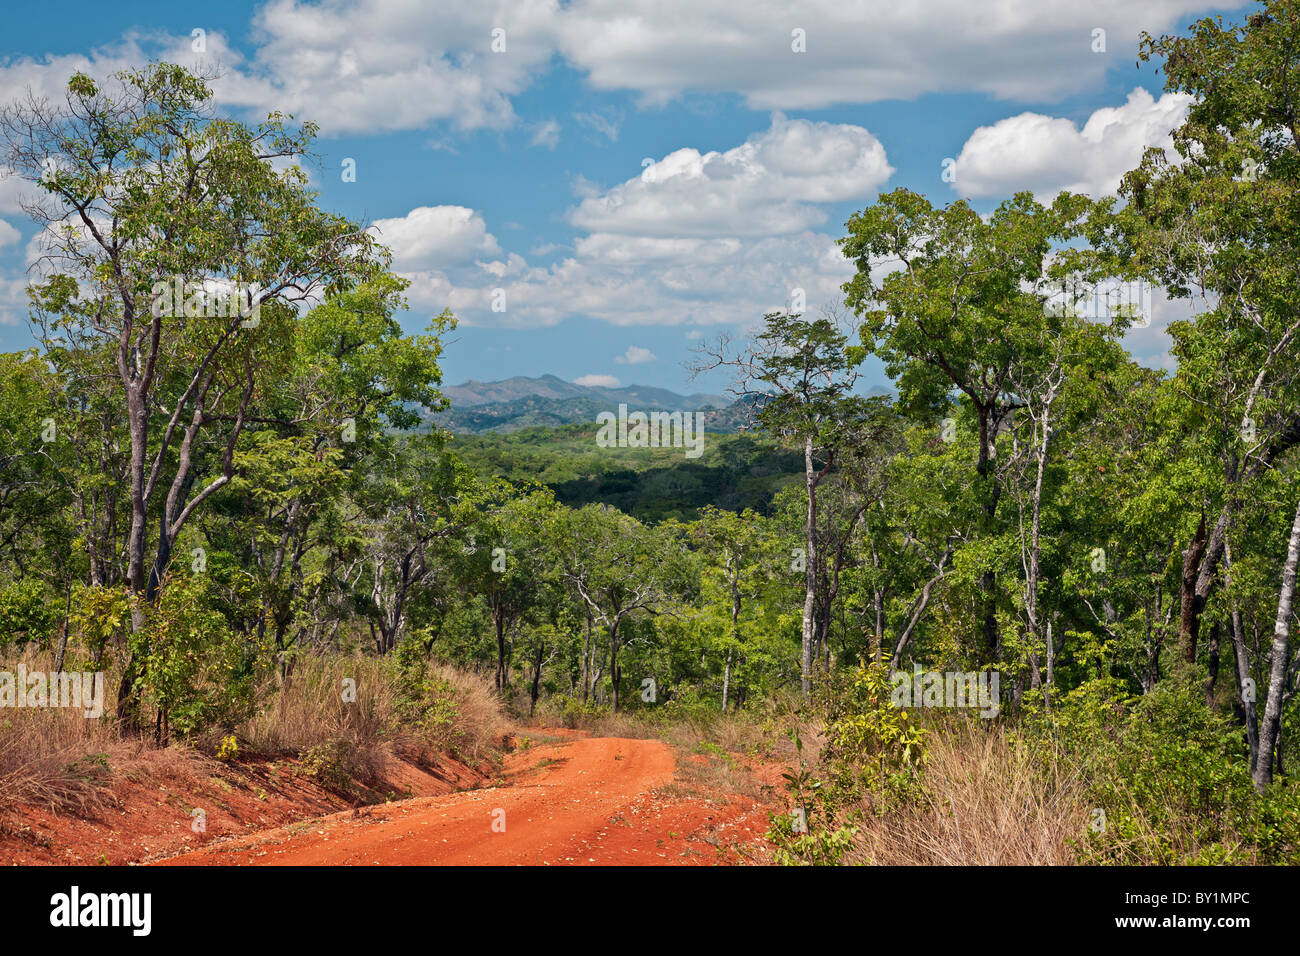 A view of the hills and indigenous forest in the low-lying Kilombero Valley of Tanzania  s Southern Highlands. - Stock Image